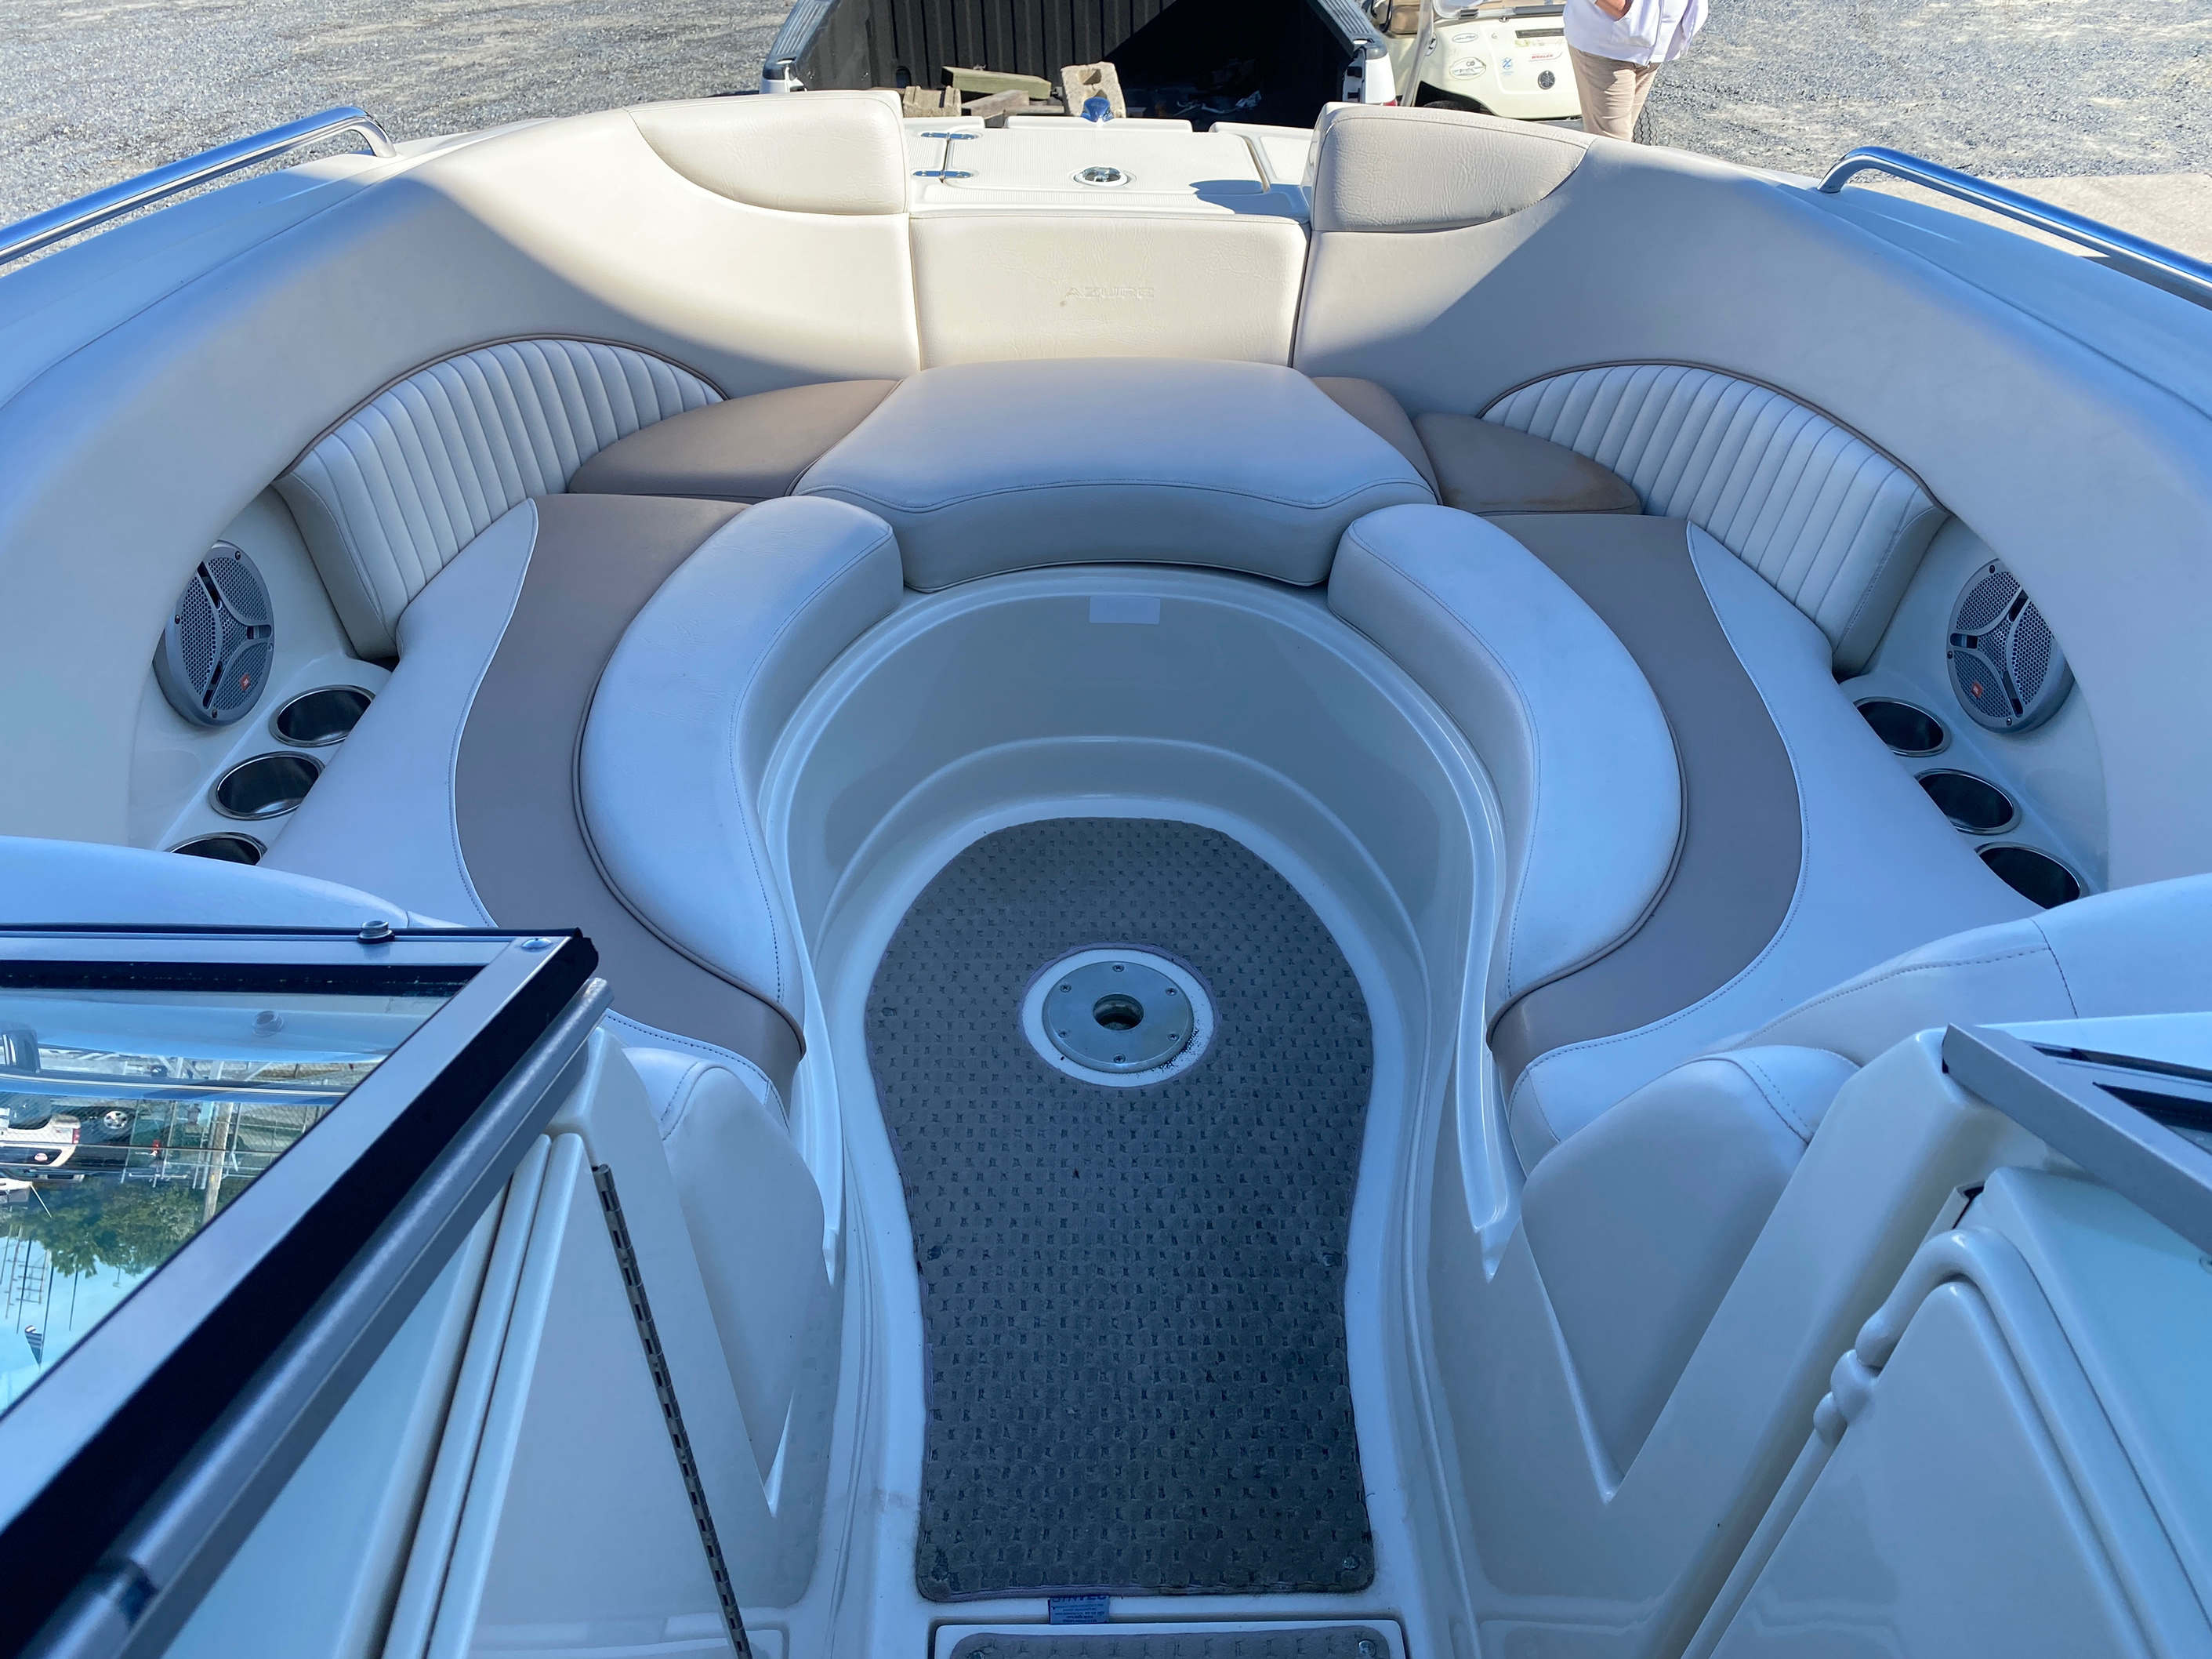 2008 Azure boat for sale, model of the boat is AZ 240 & Image # 15 of 18